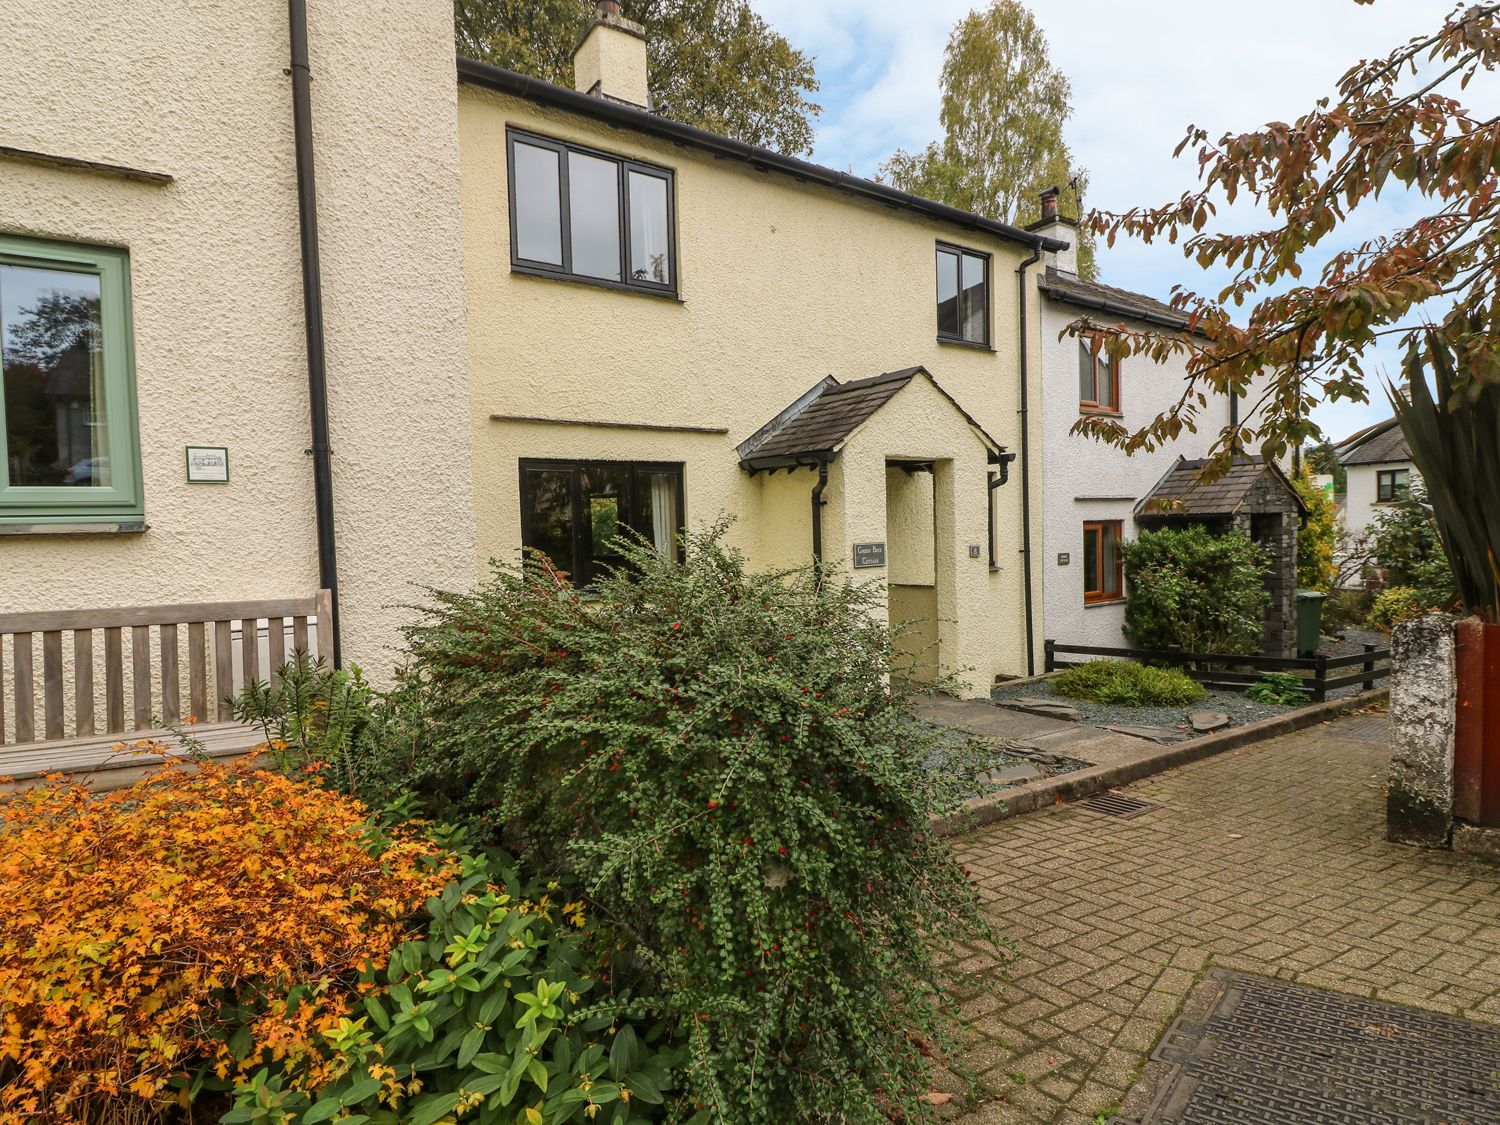 Greenbeck Cottage in Coniston - sleeps 5 people